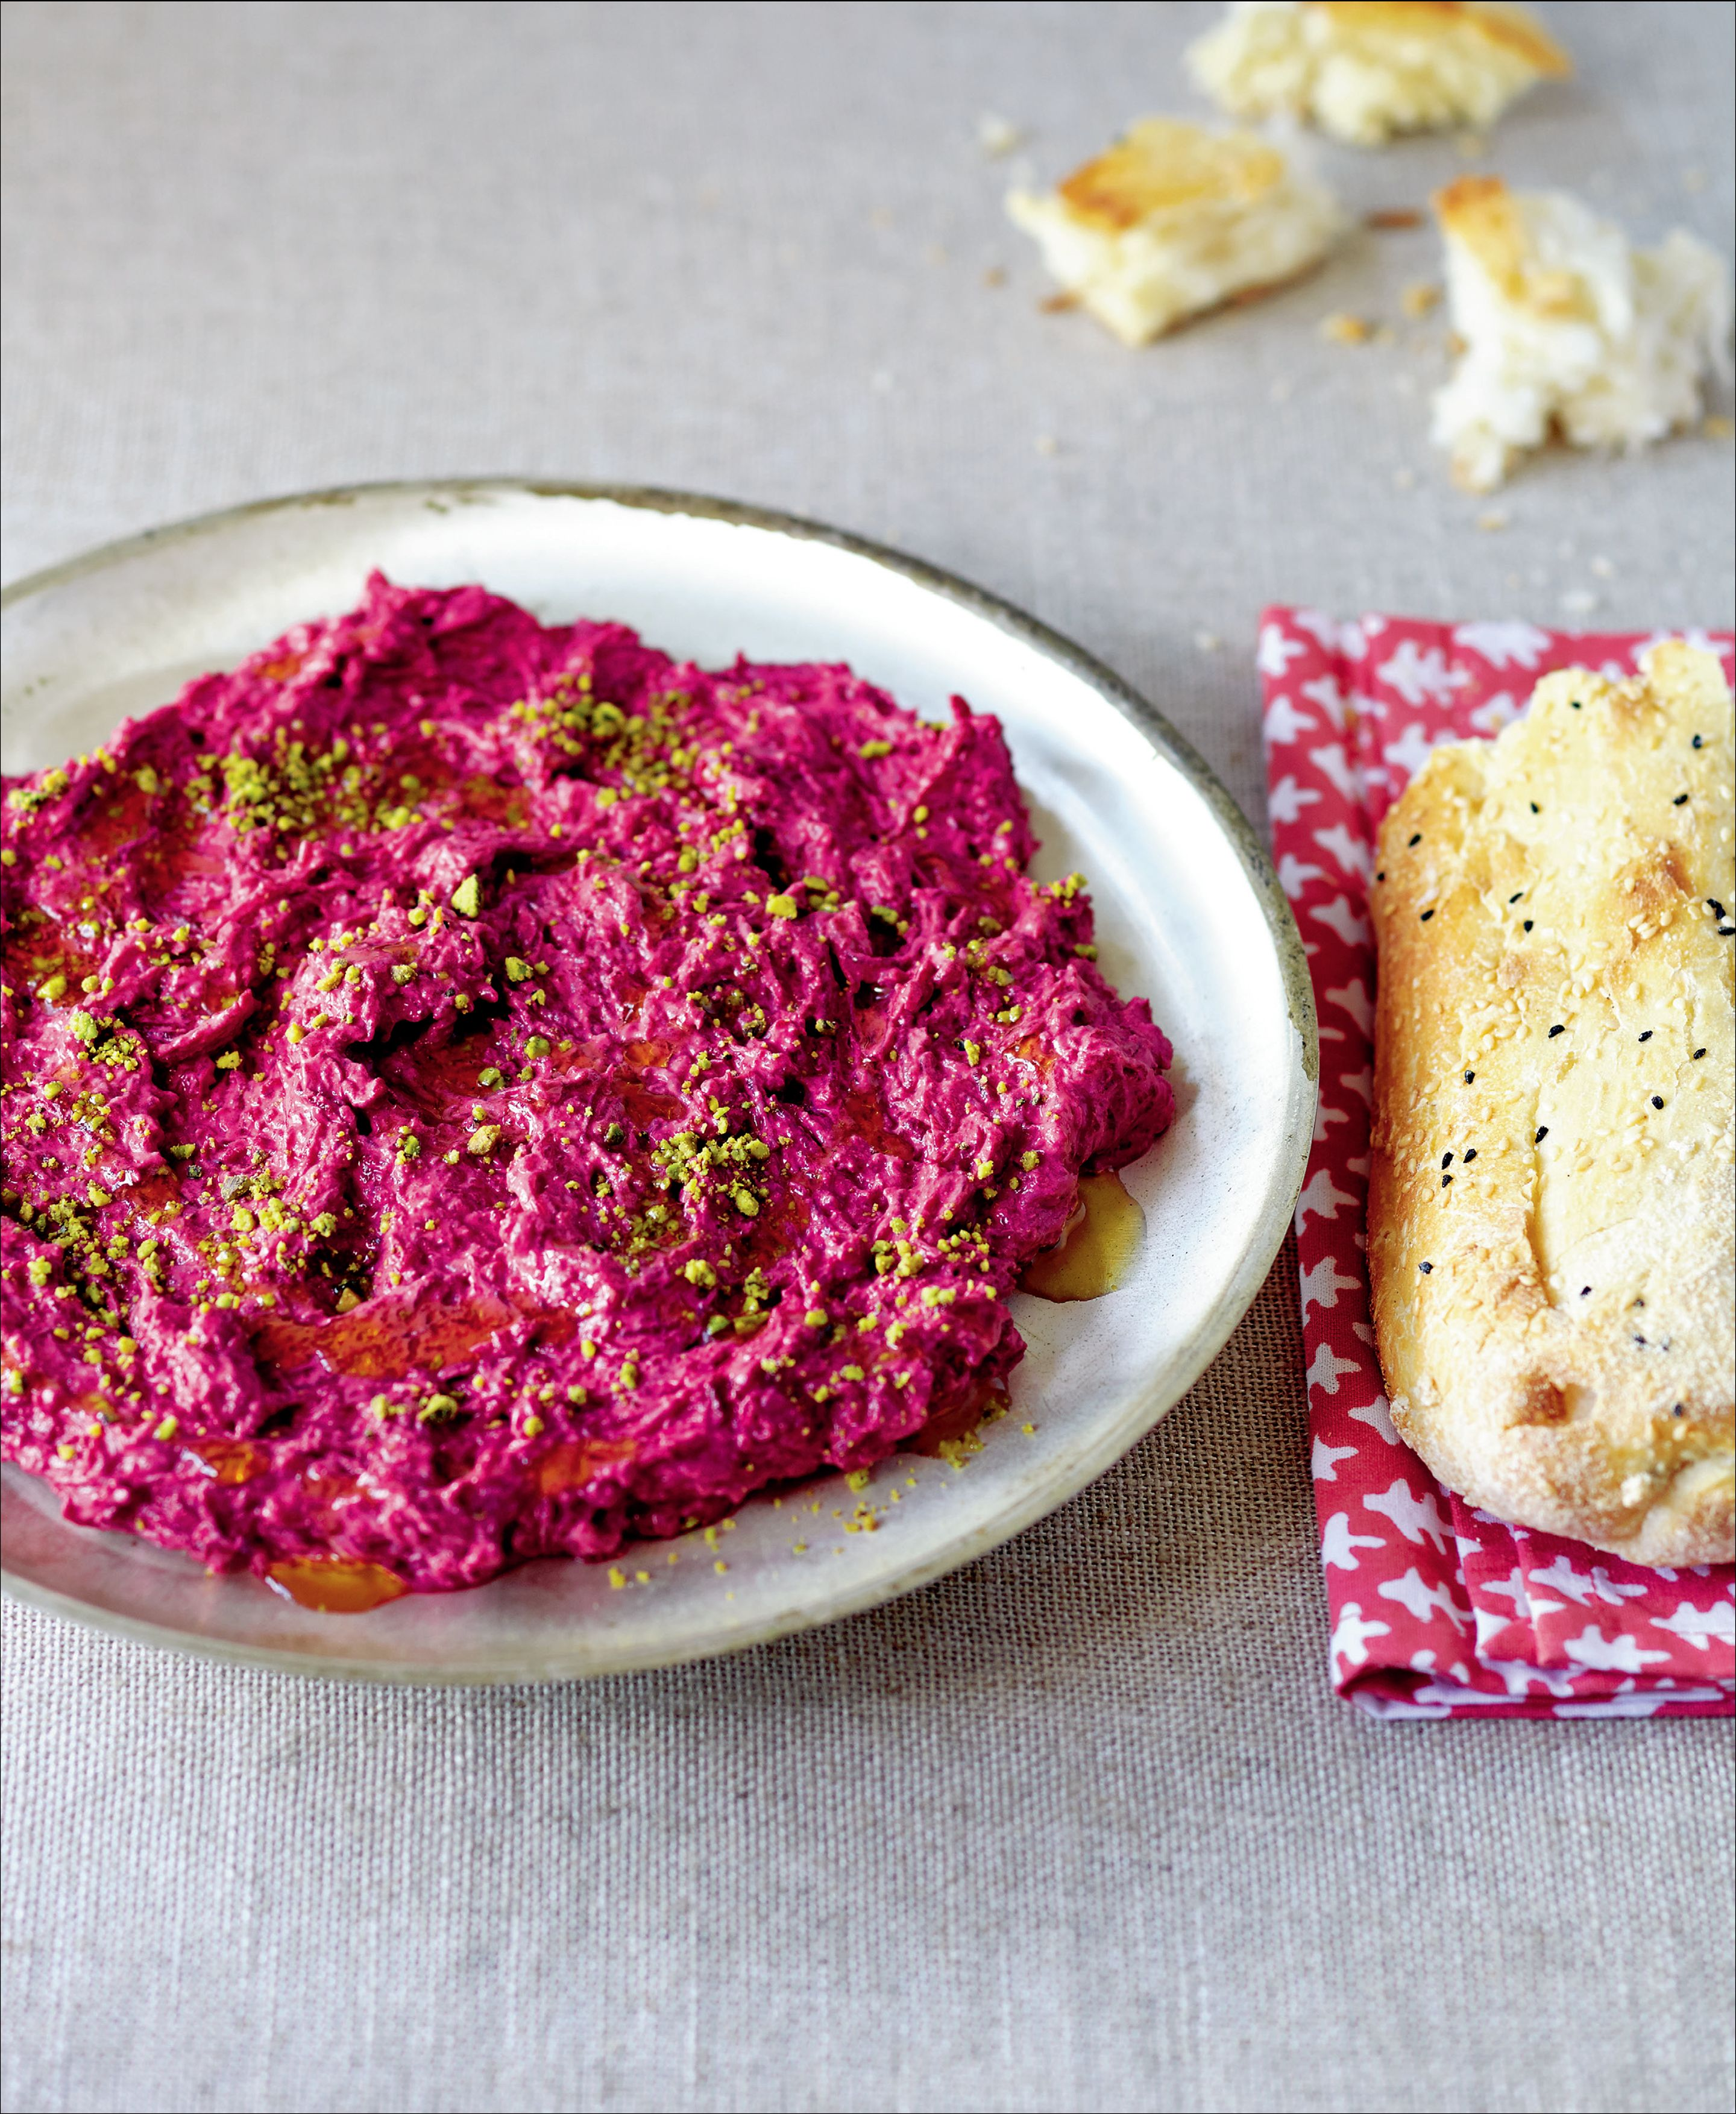 Roasted beetroot & pistachio dip